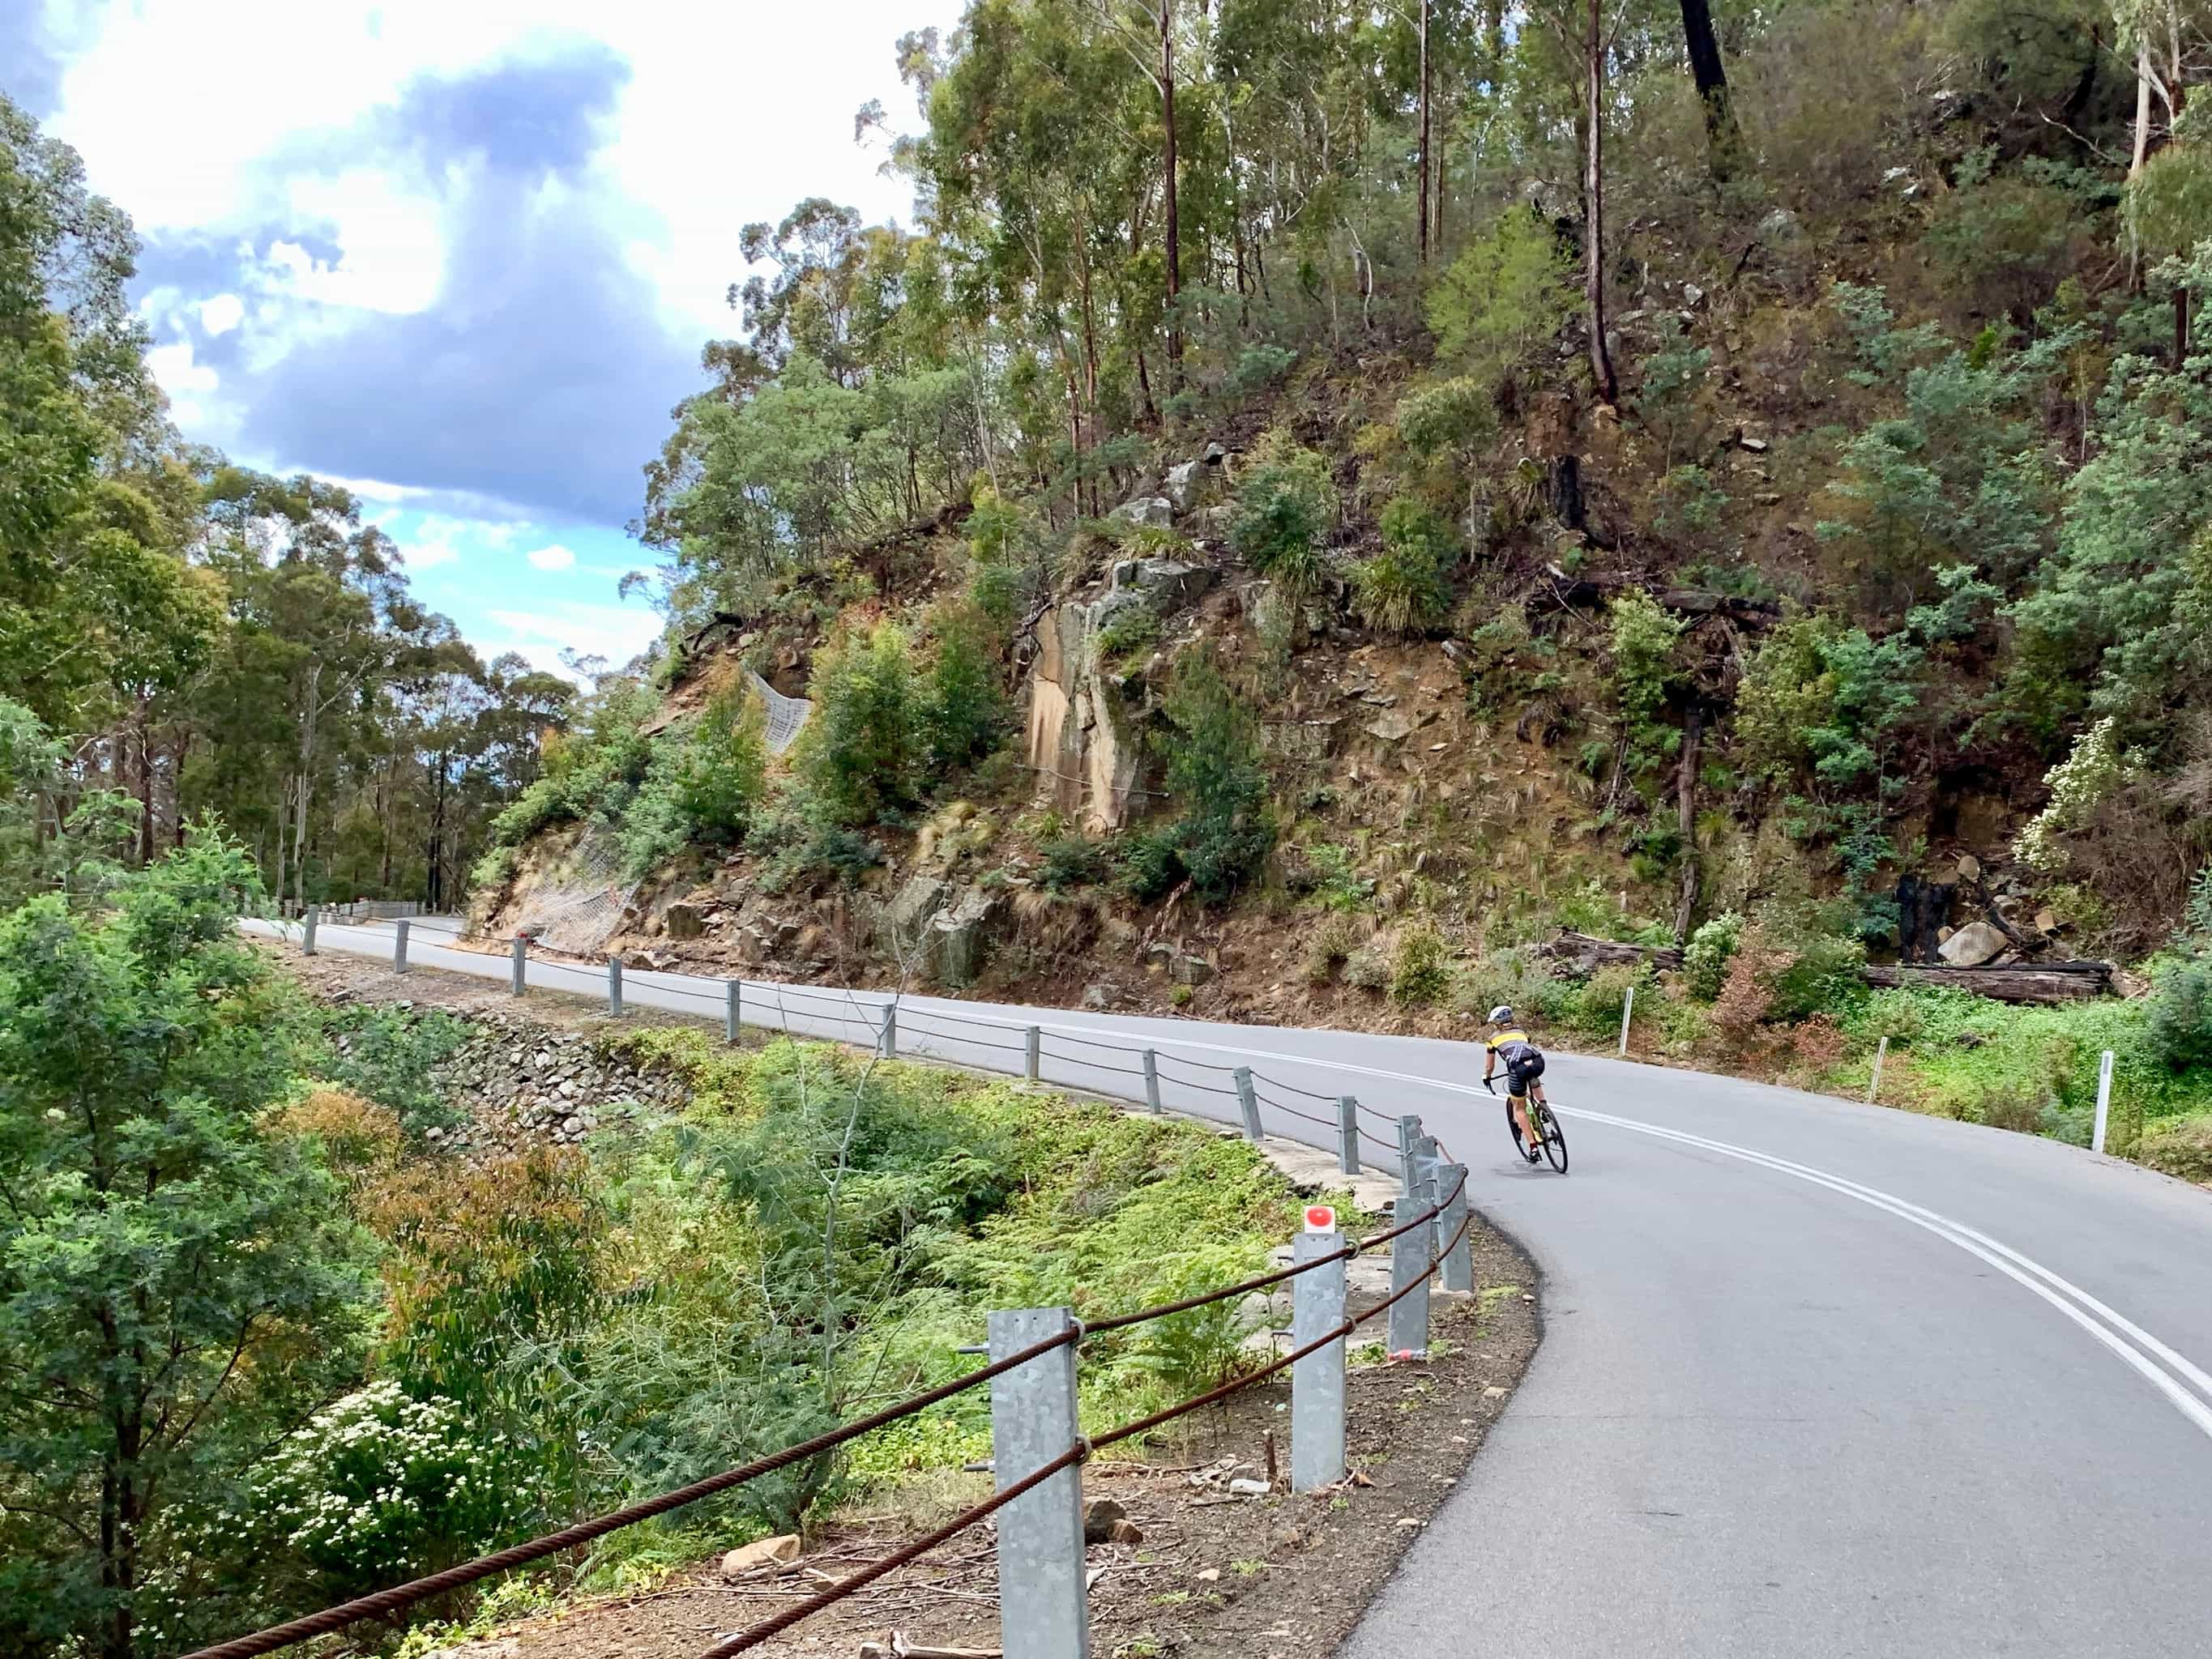 Bike rider descending St. Marys pass on paved road.